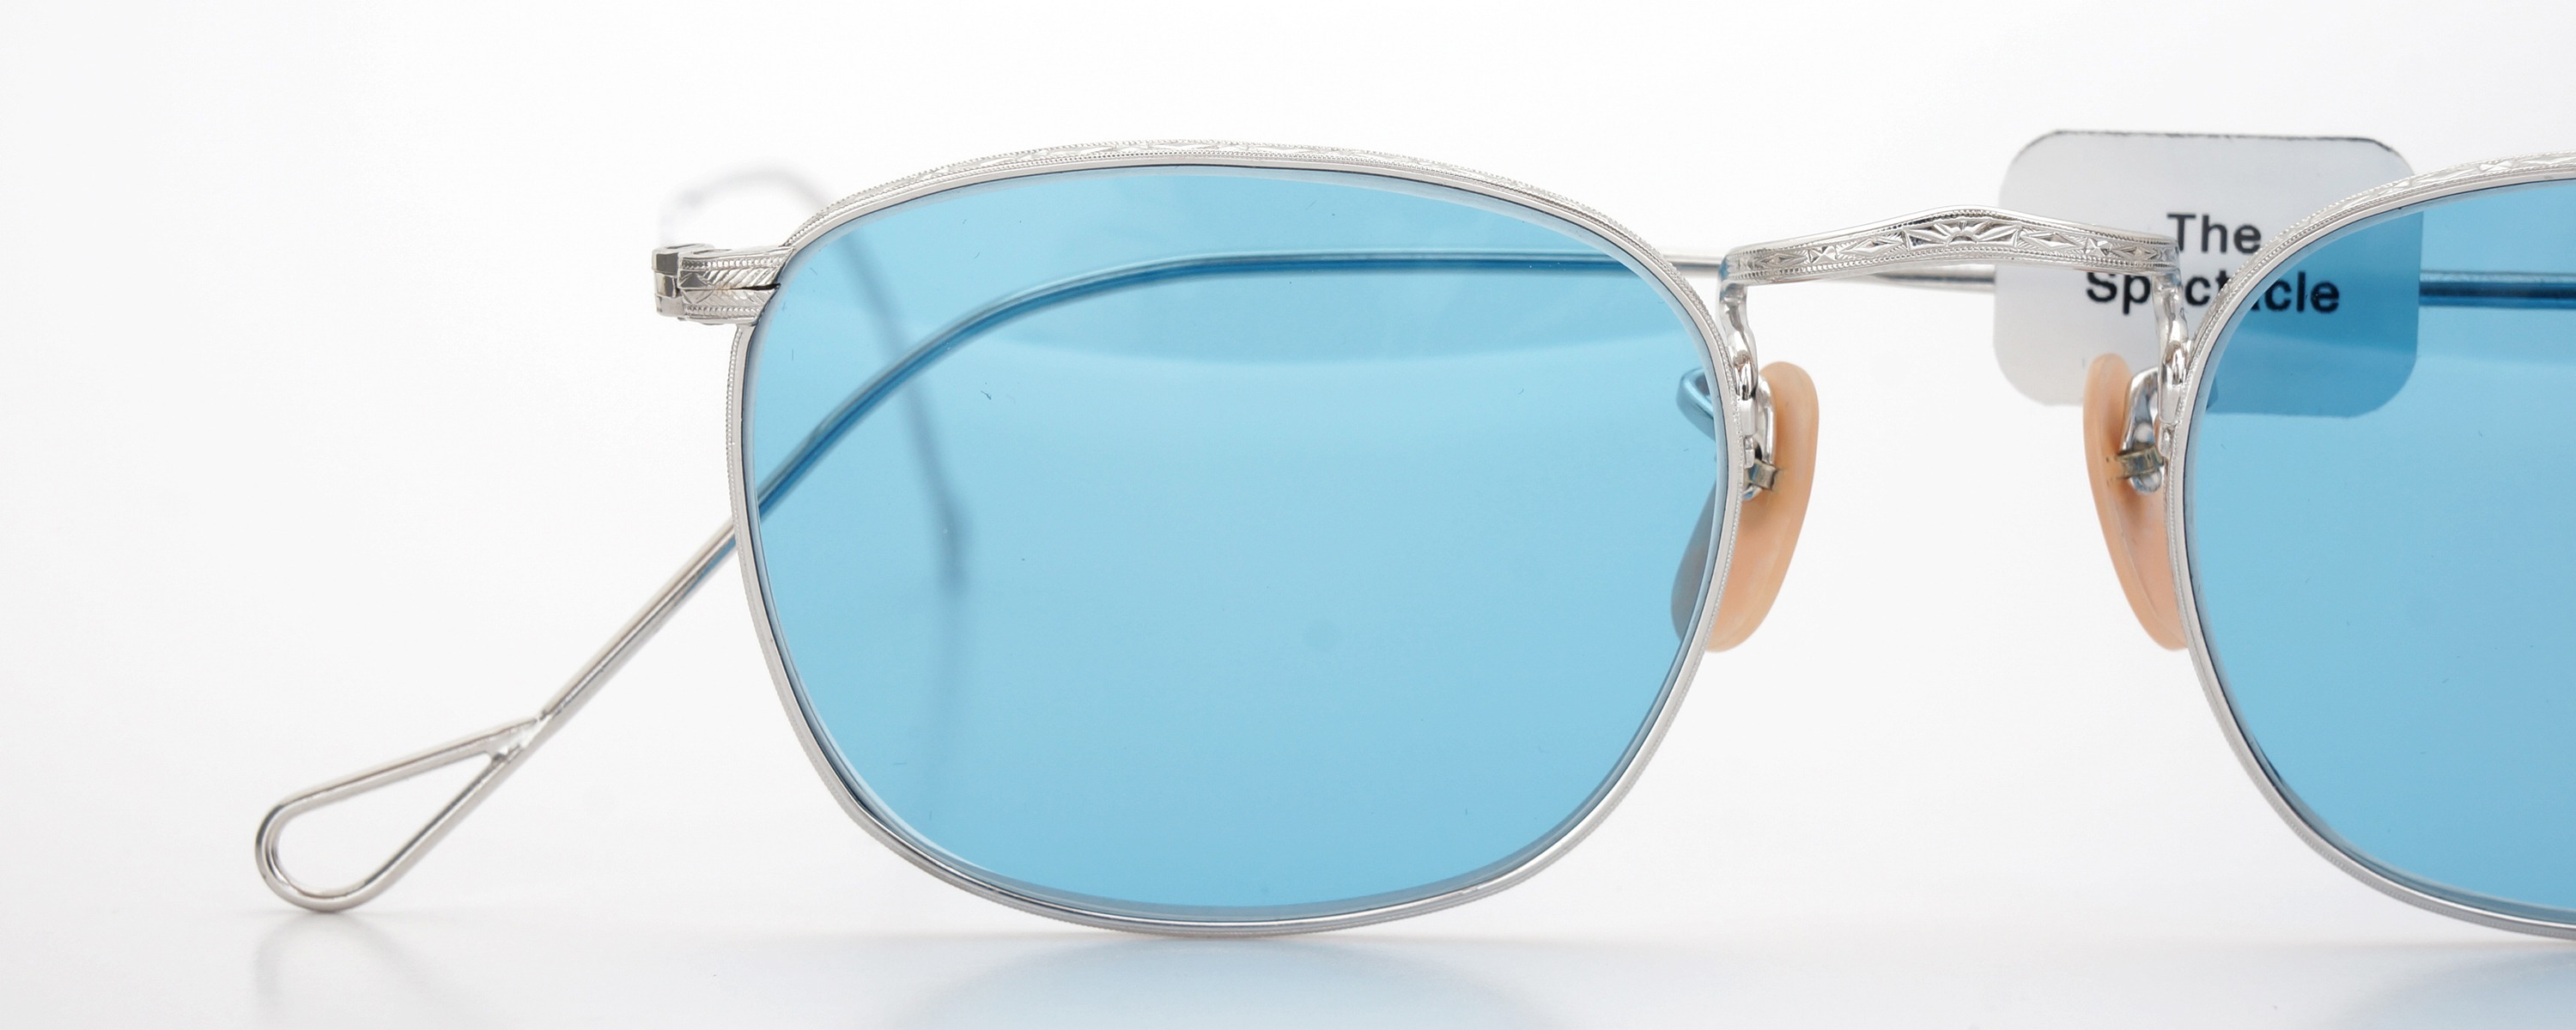 The Spectacle メガネ 1930s-40s Bausch&Lomb Full-Frame Ful-Vue Whitaker WG 45-21 Light-Blue-Lense イメージ17